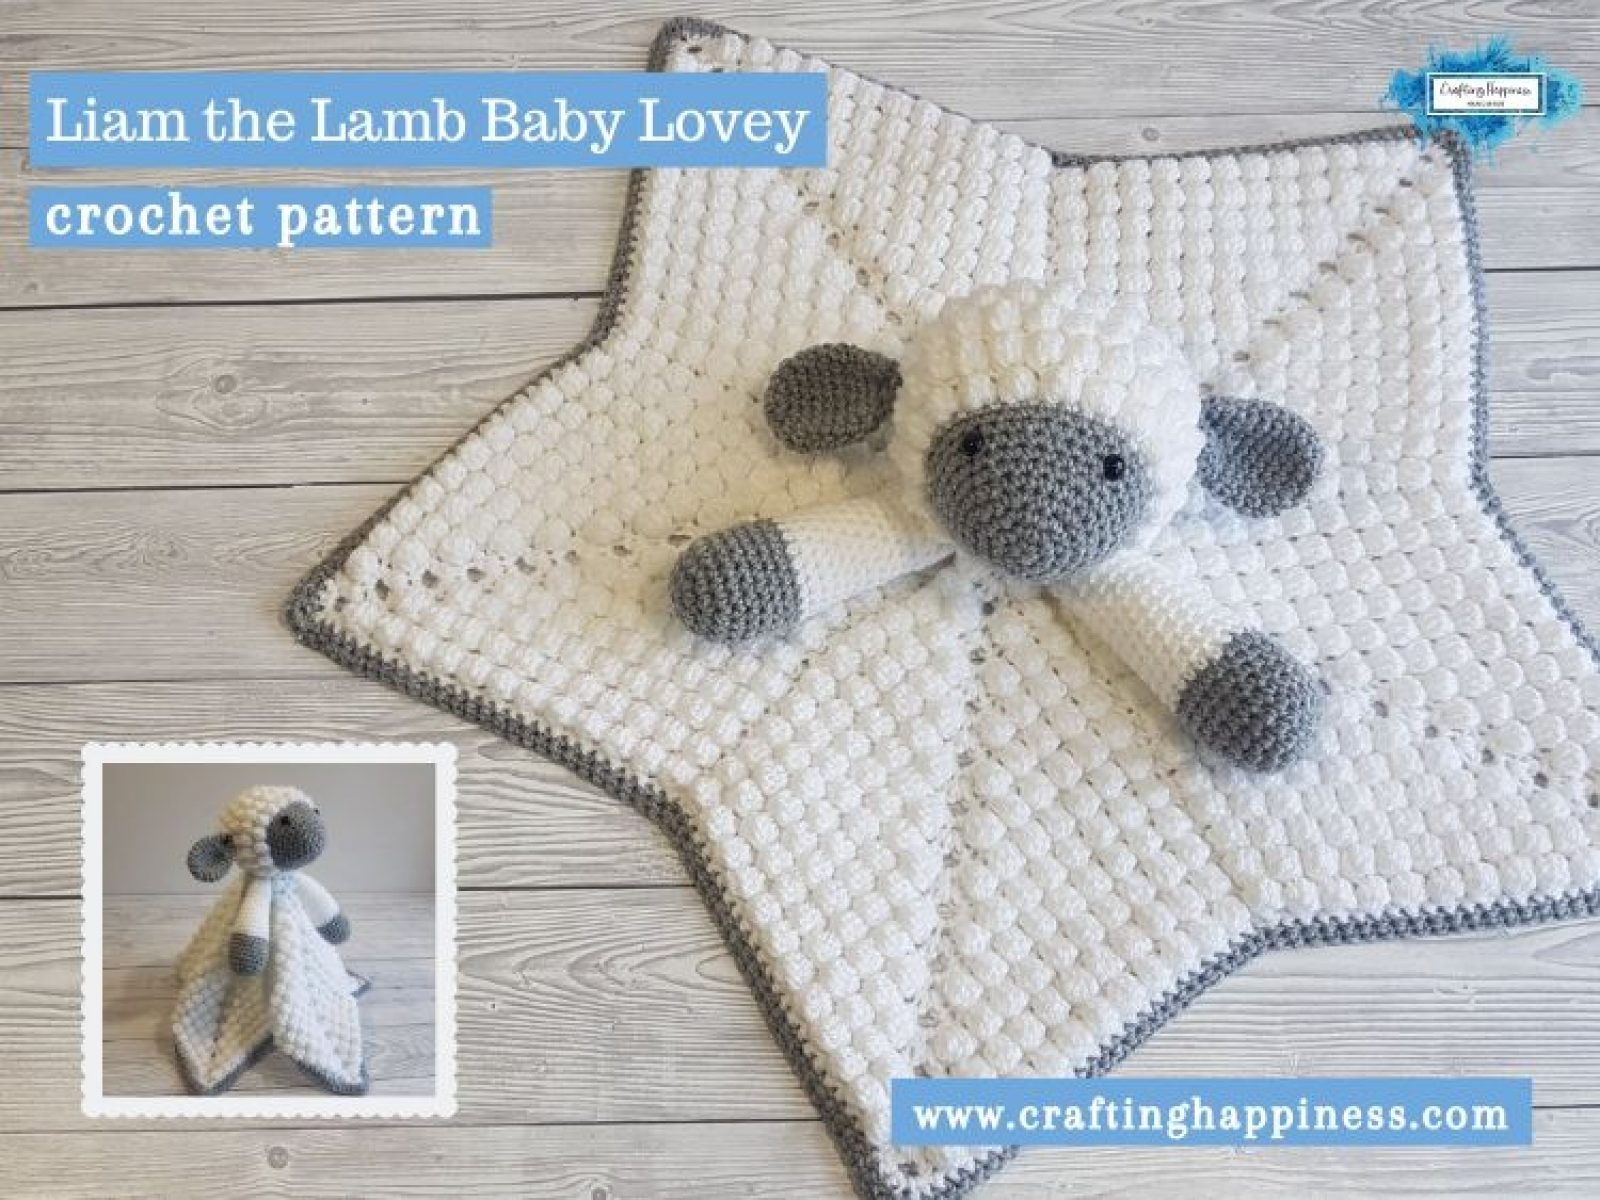 Liam the Lamb Baby Lovey by Crafting Happiness FACEBOOK POSTER